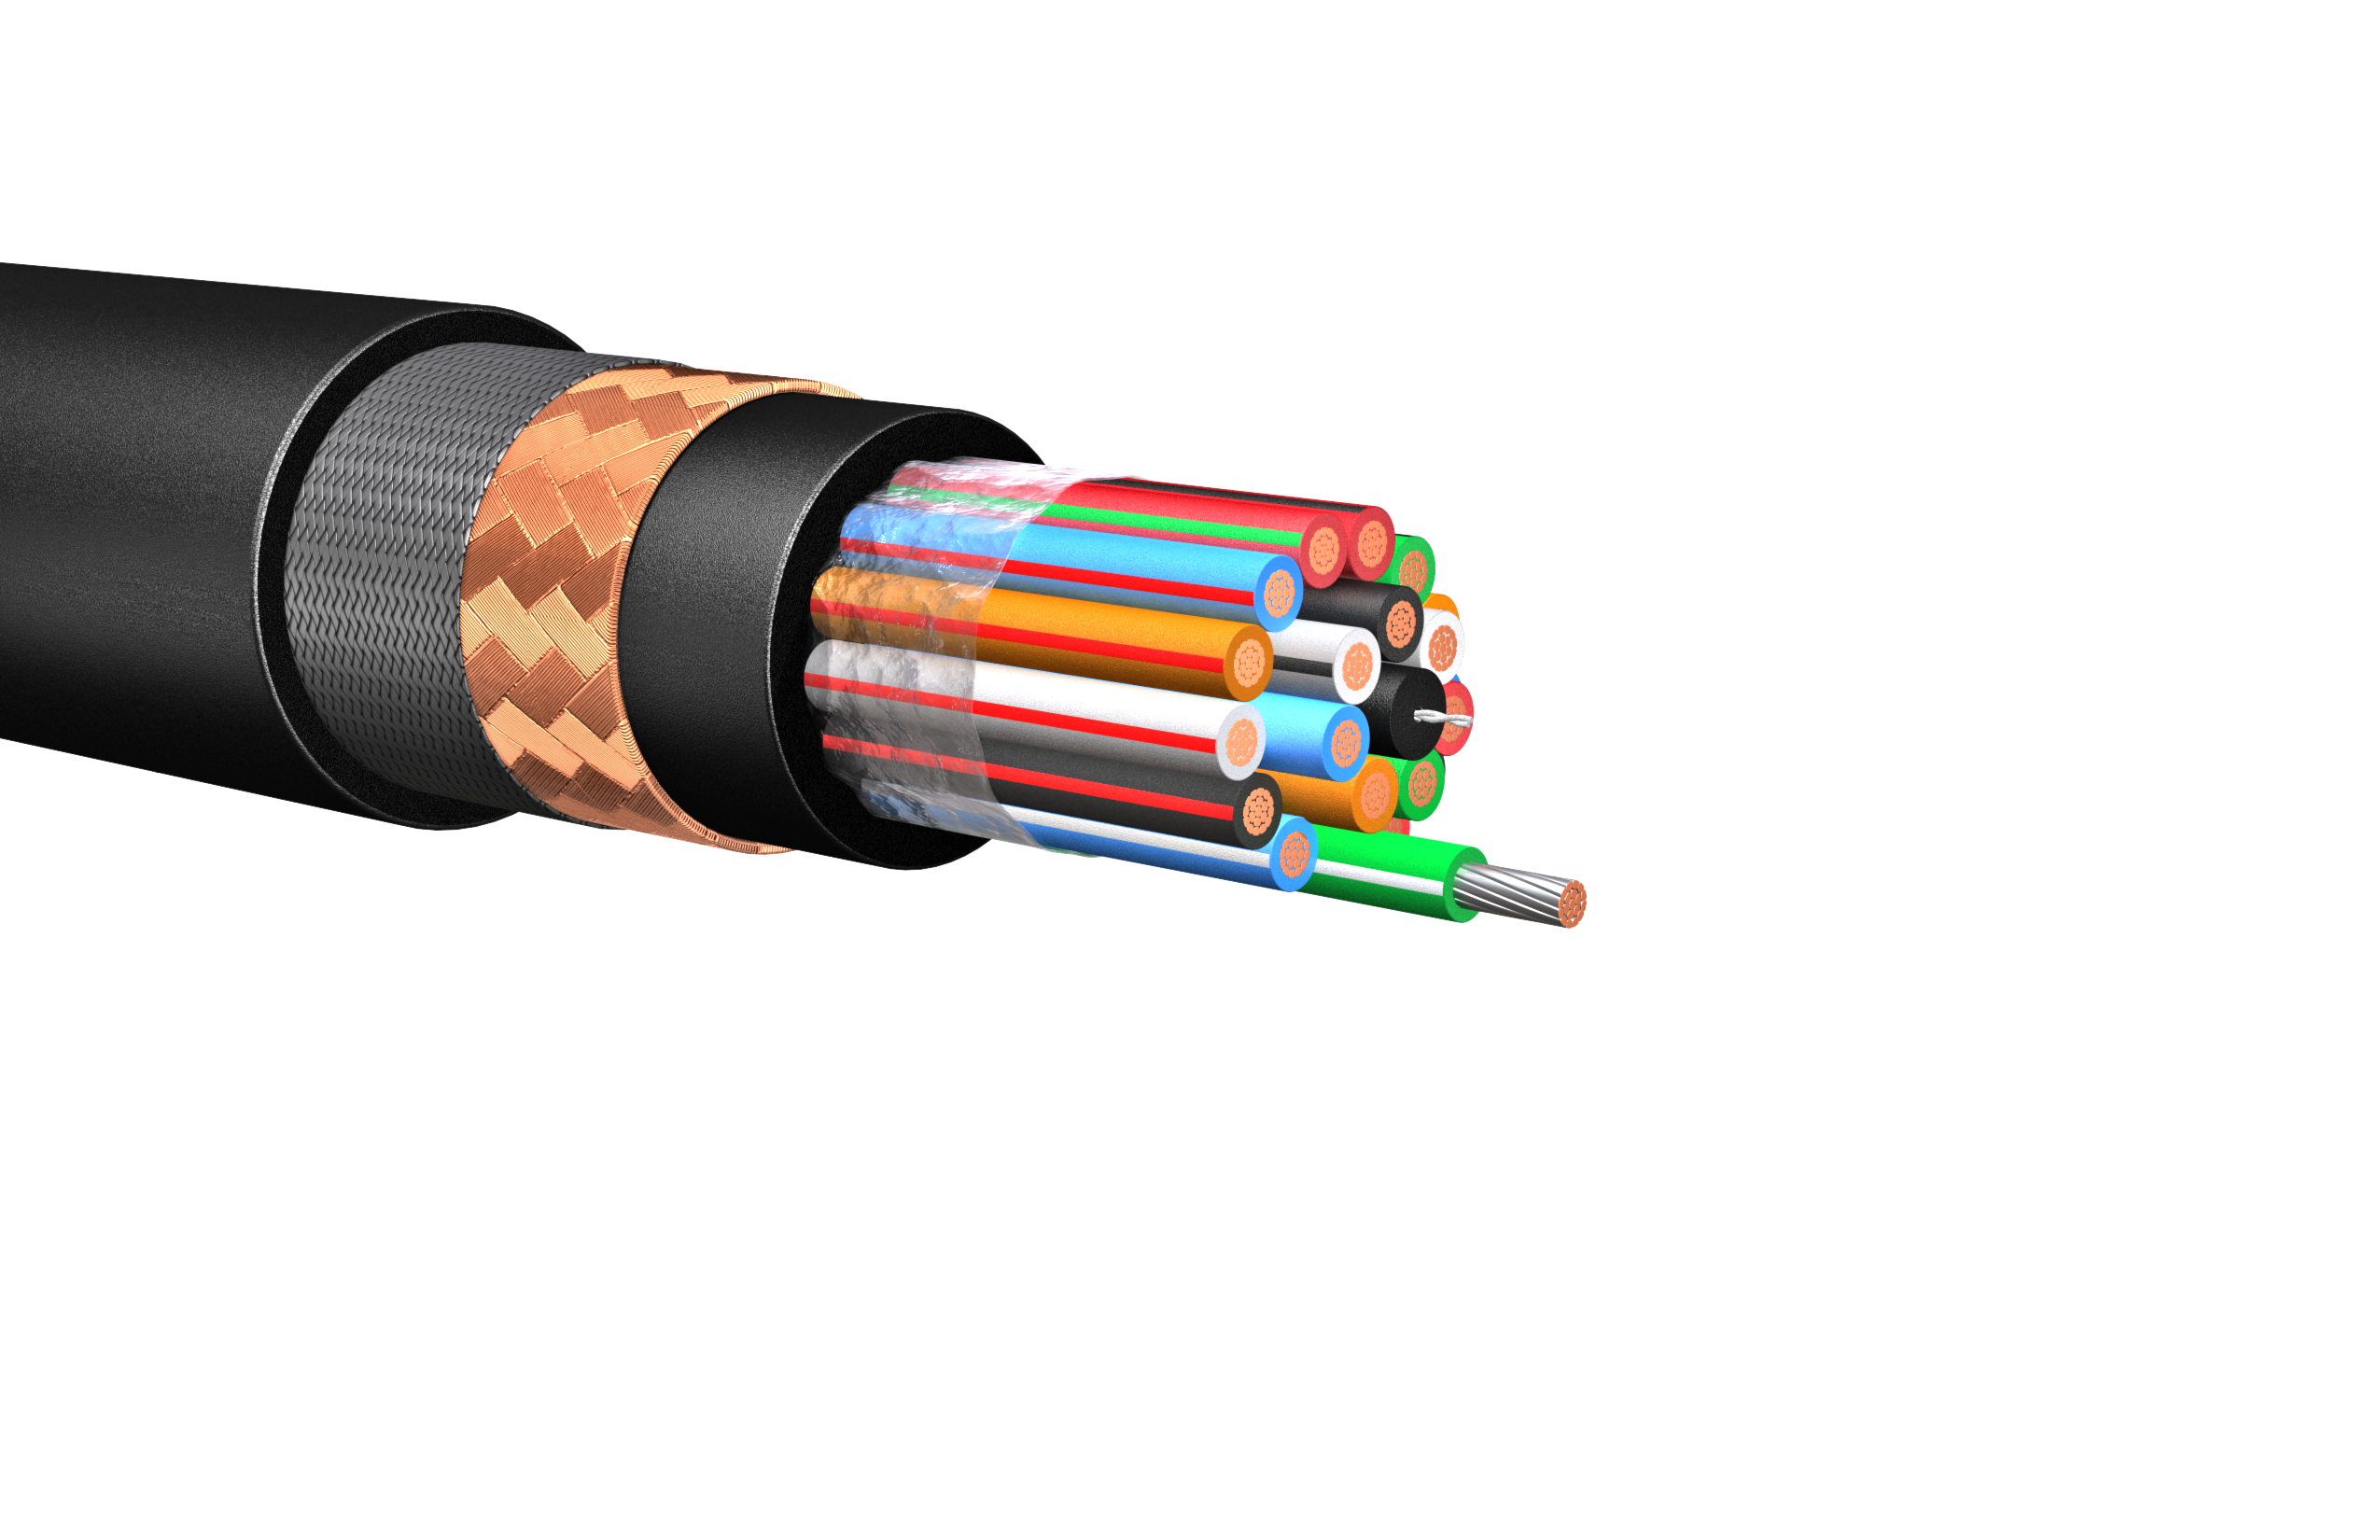 HW278: 600V/1kV Multi-Conductor Control Cable, Armored & Sheathed